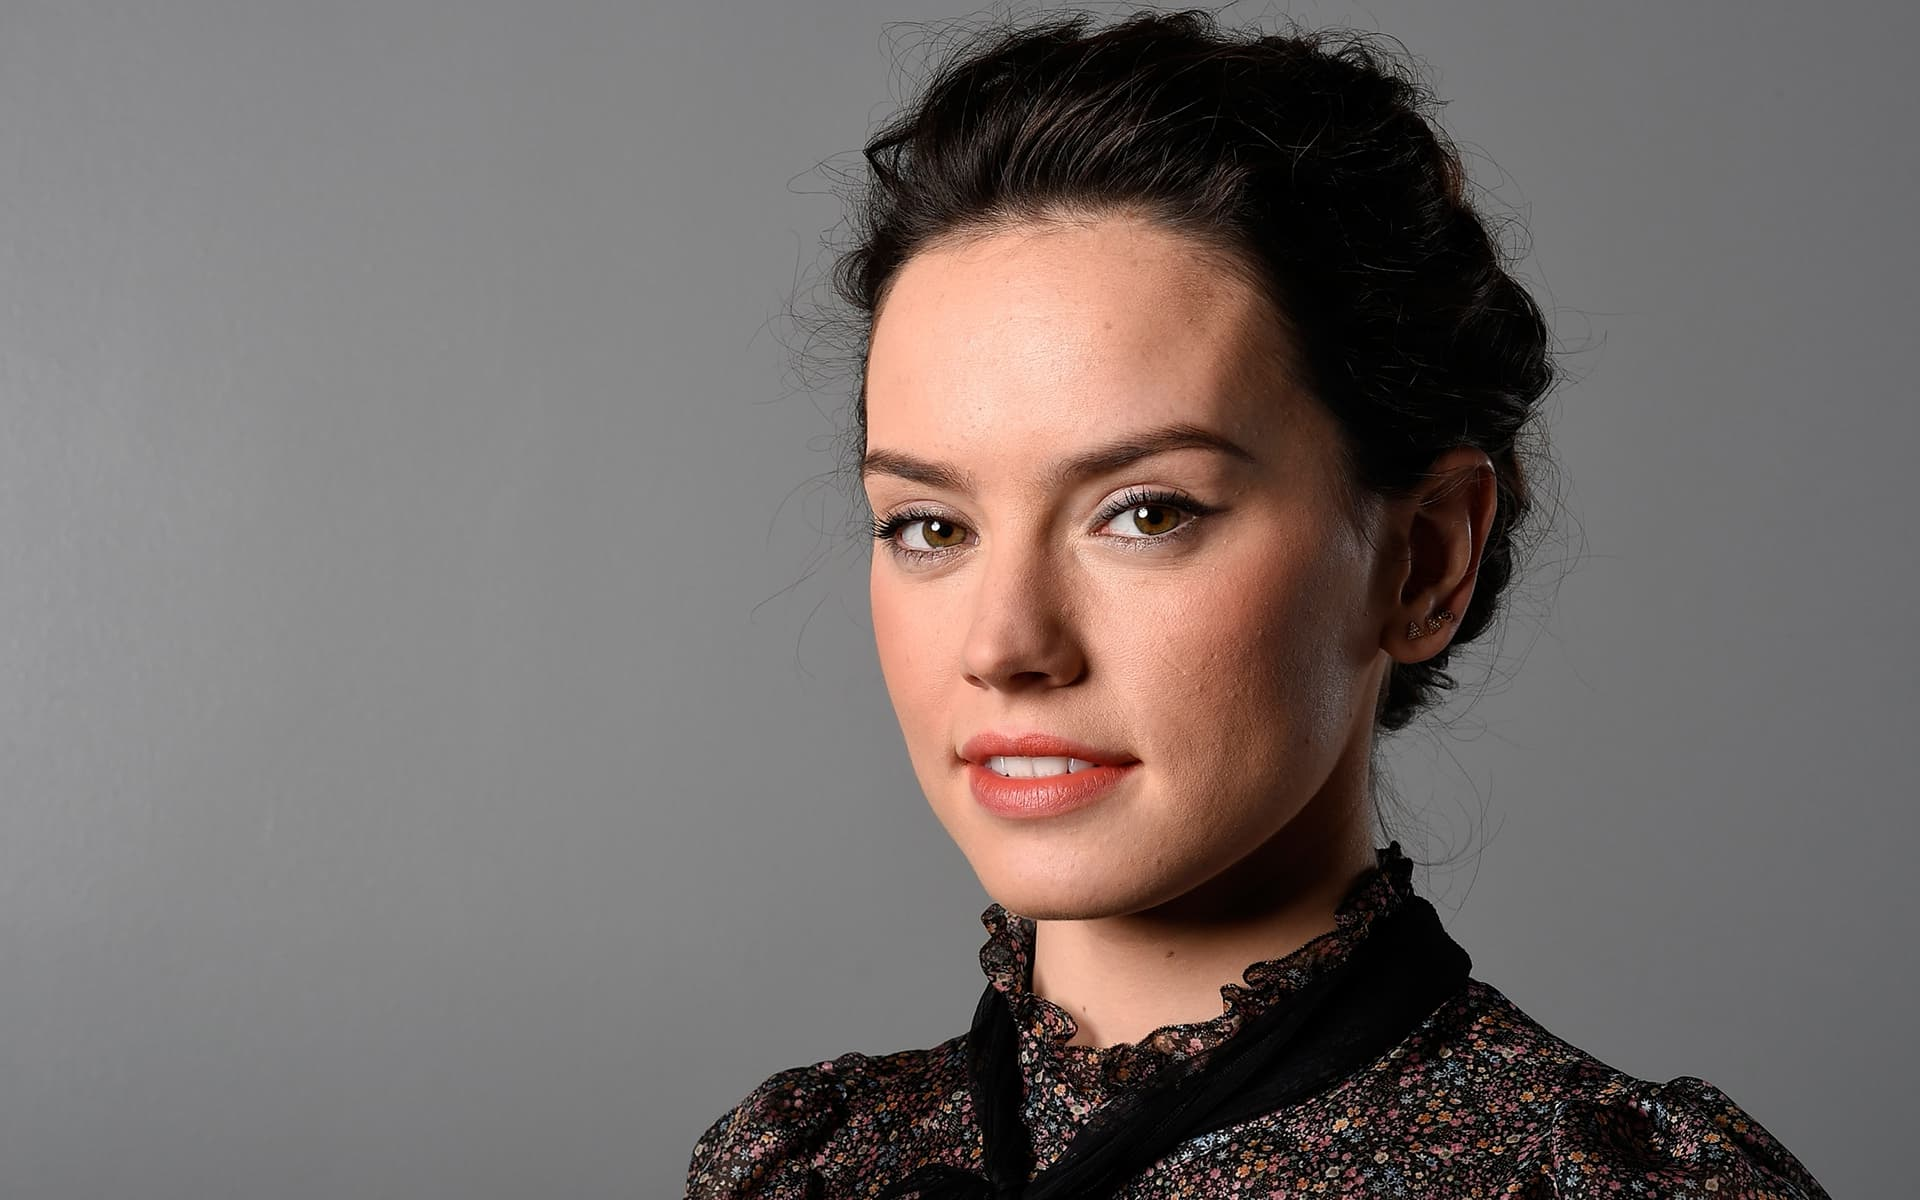 Cool For Girls Wallpapers 10 Daisy Ridley Wallpapers High Quality Resolution Download